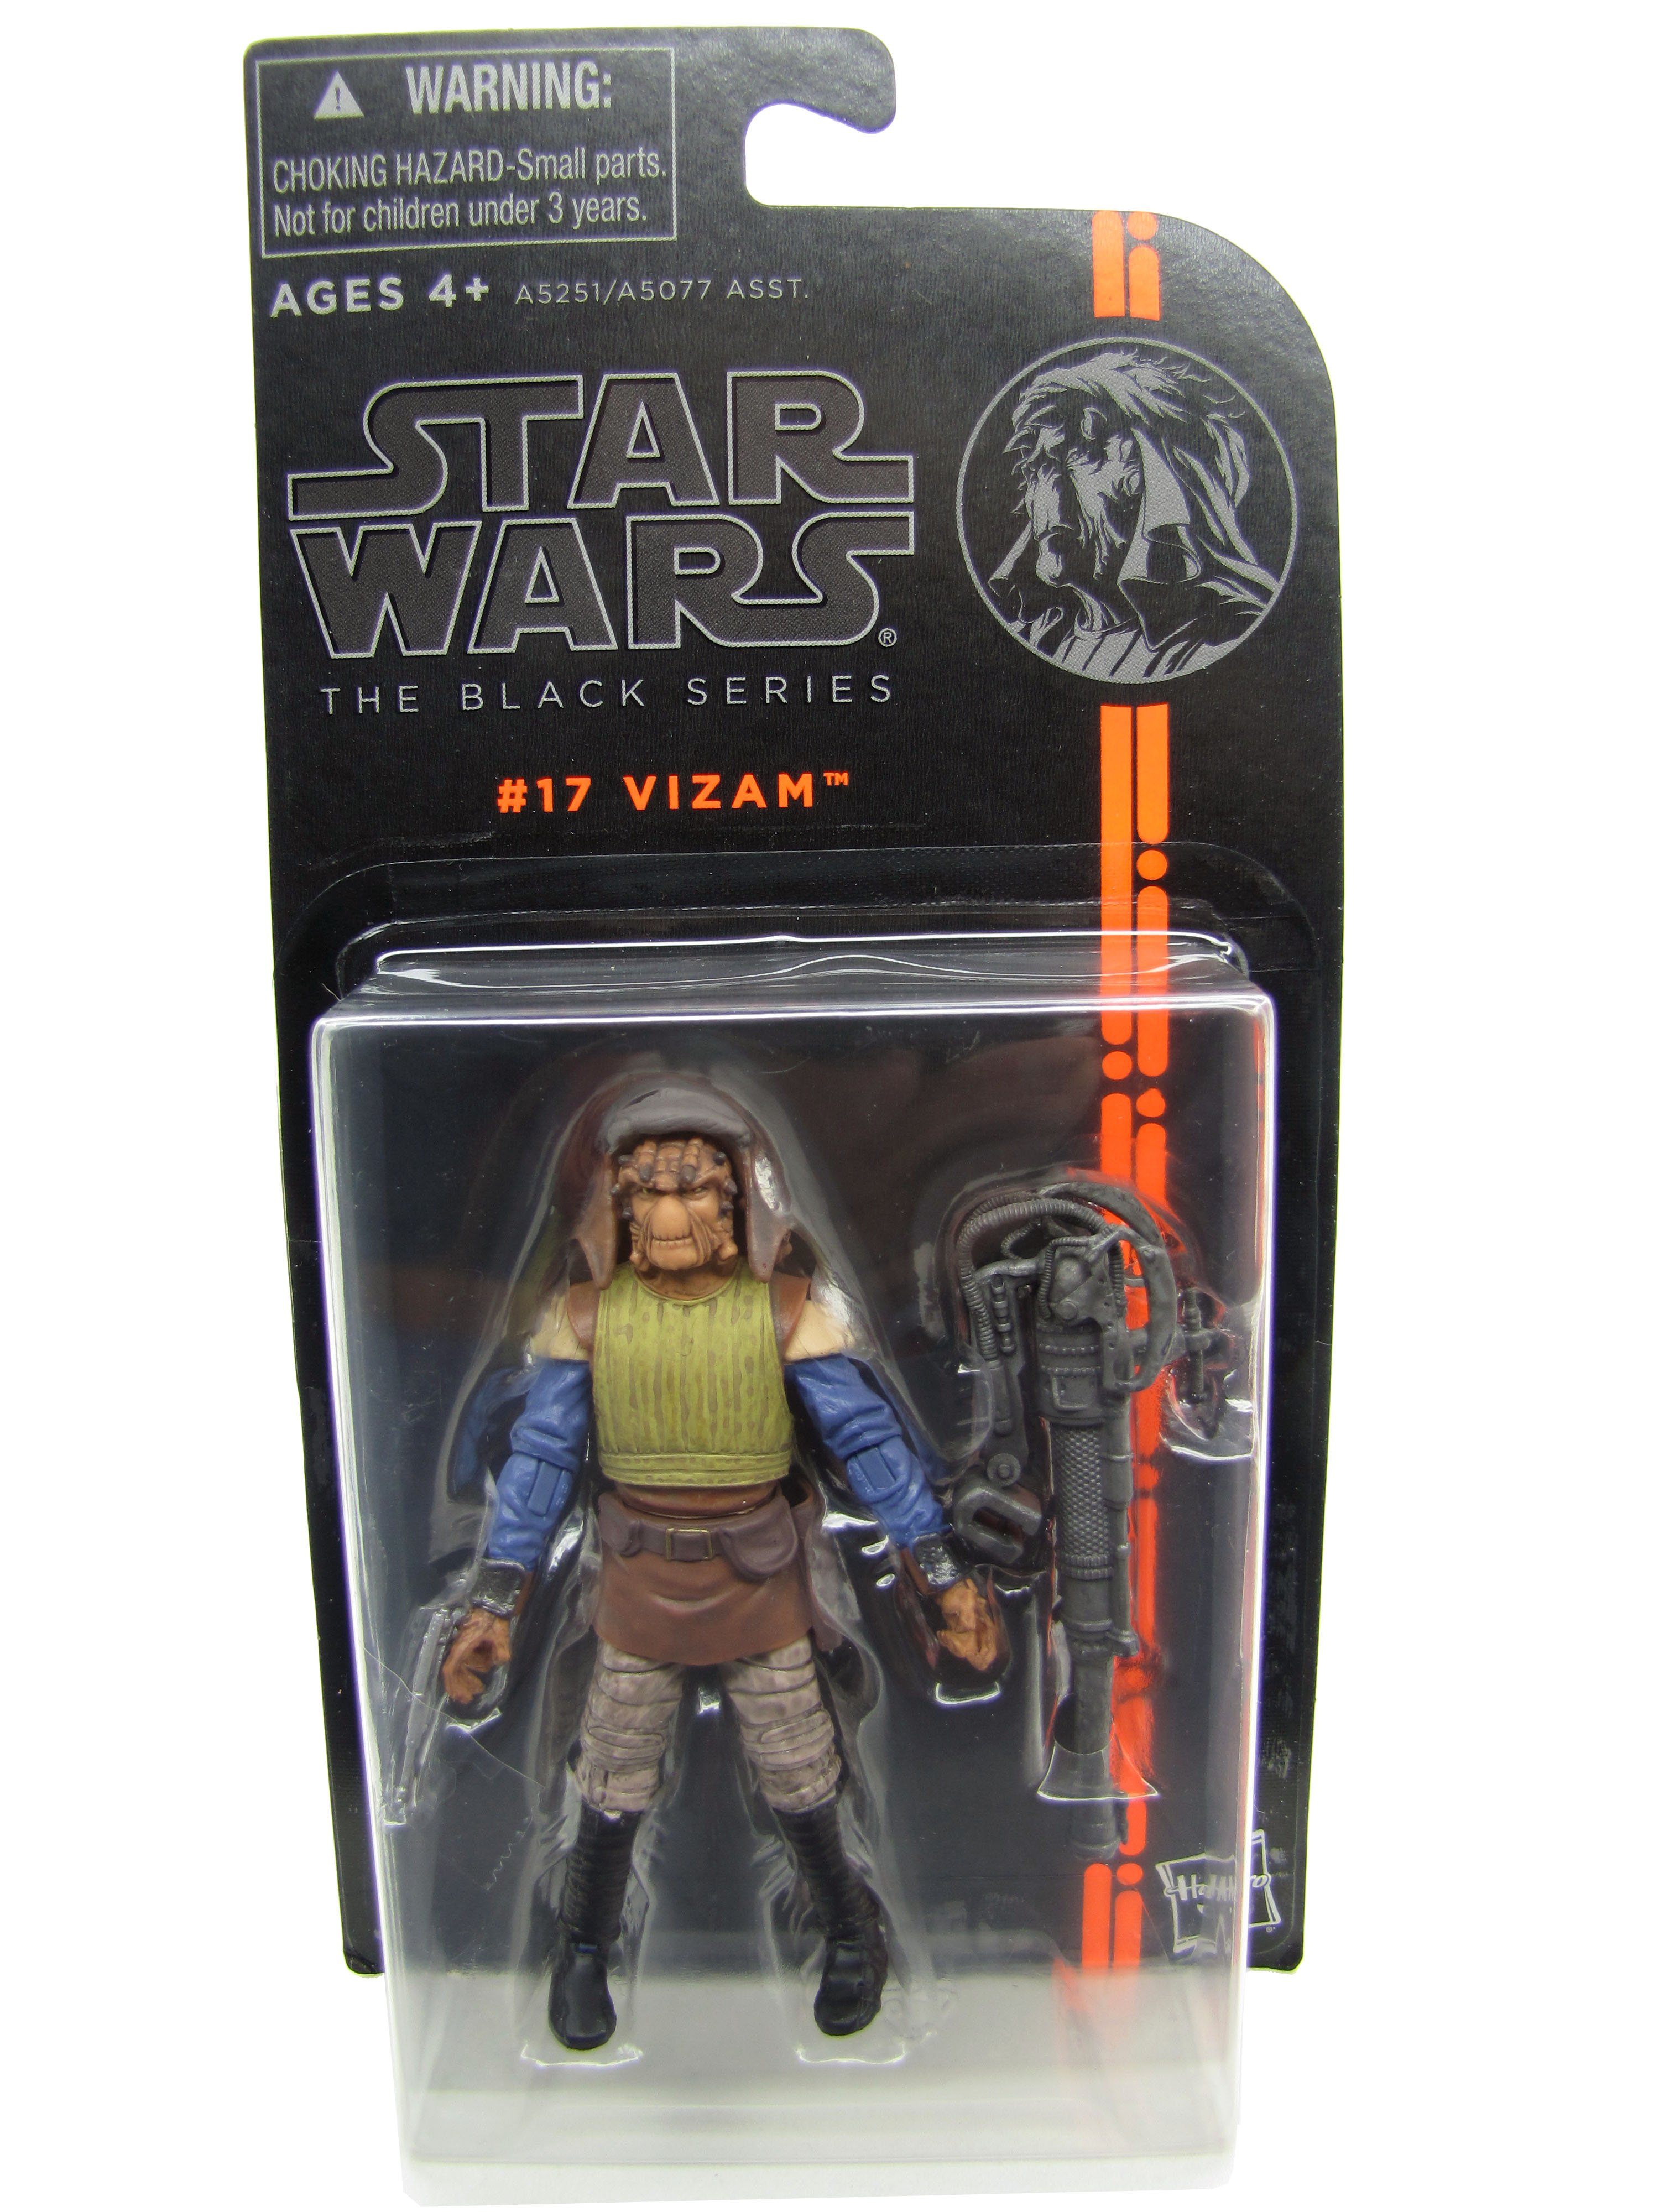 2013 The Black Series #17: Vizam Sealed Mint on Card